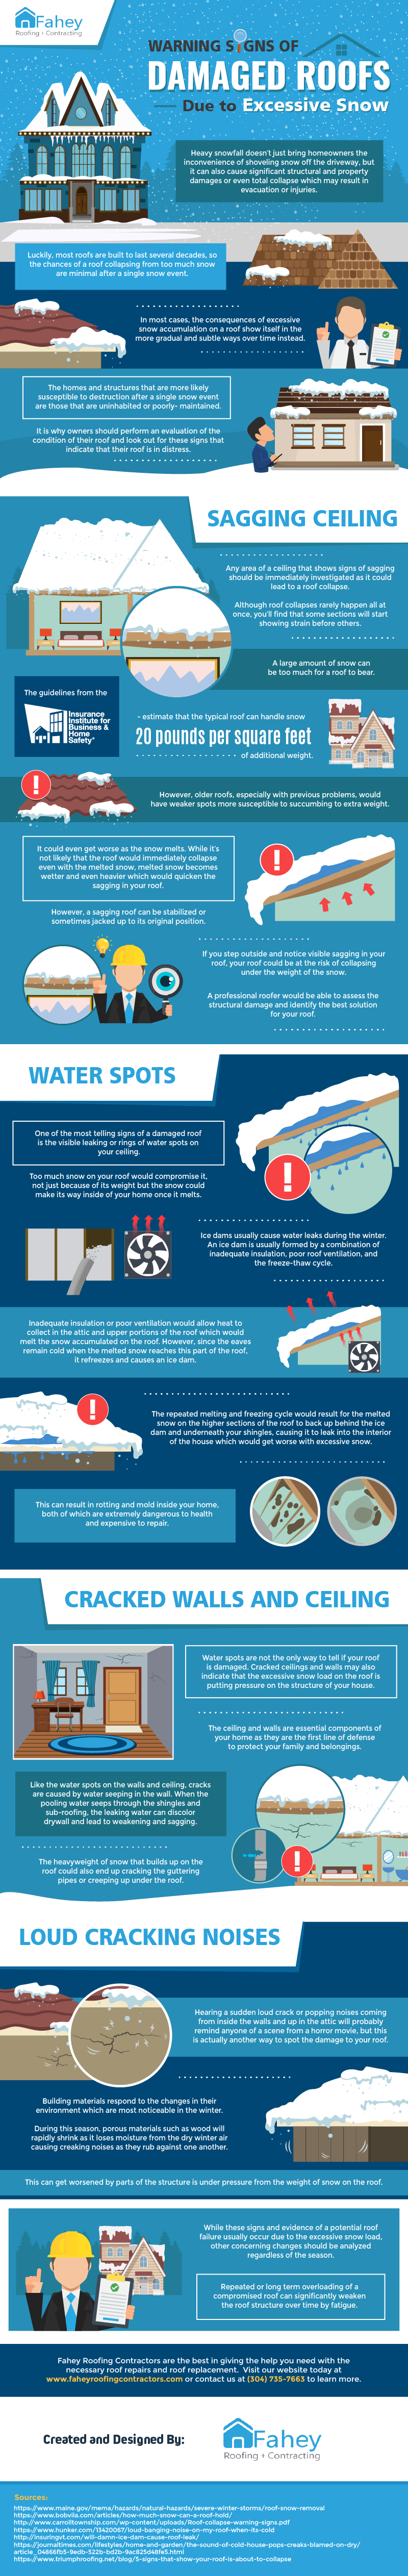 Warning Signs of Damaged Roofs Due to Excessive Snow